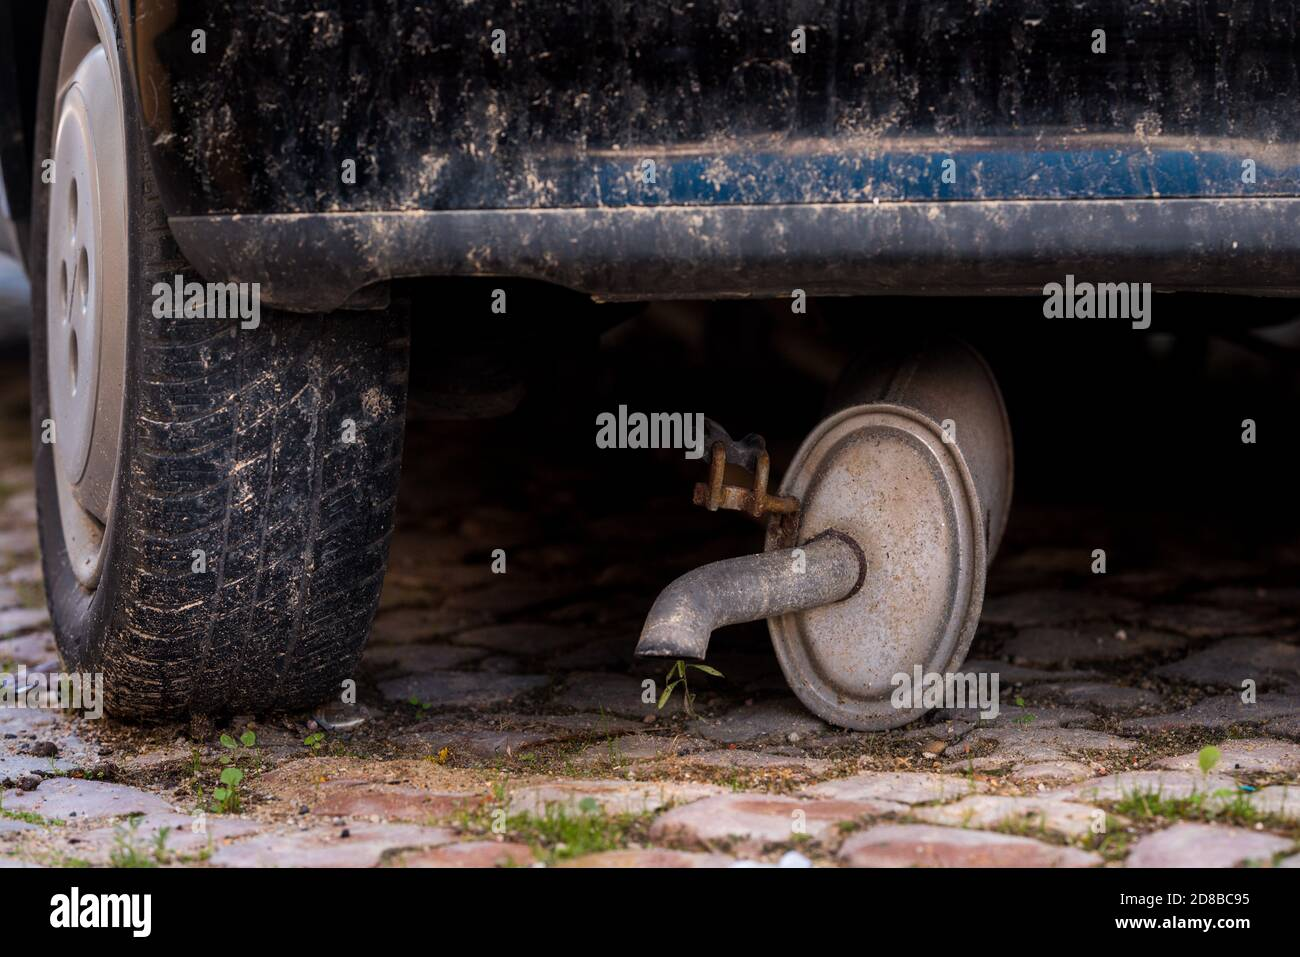 Abandoned Vehicles High Resolution Stock Photography And Images Alamy